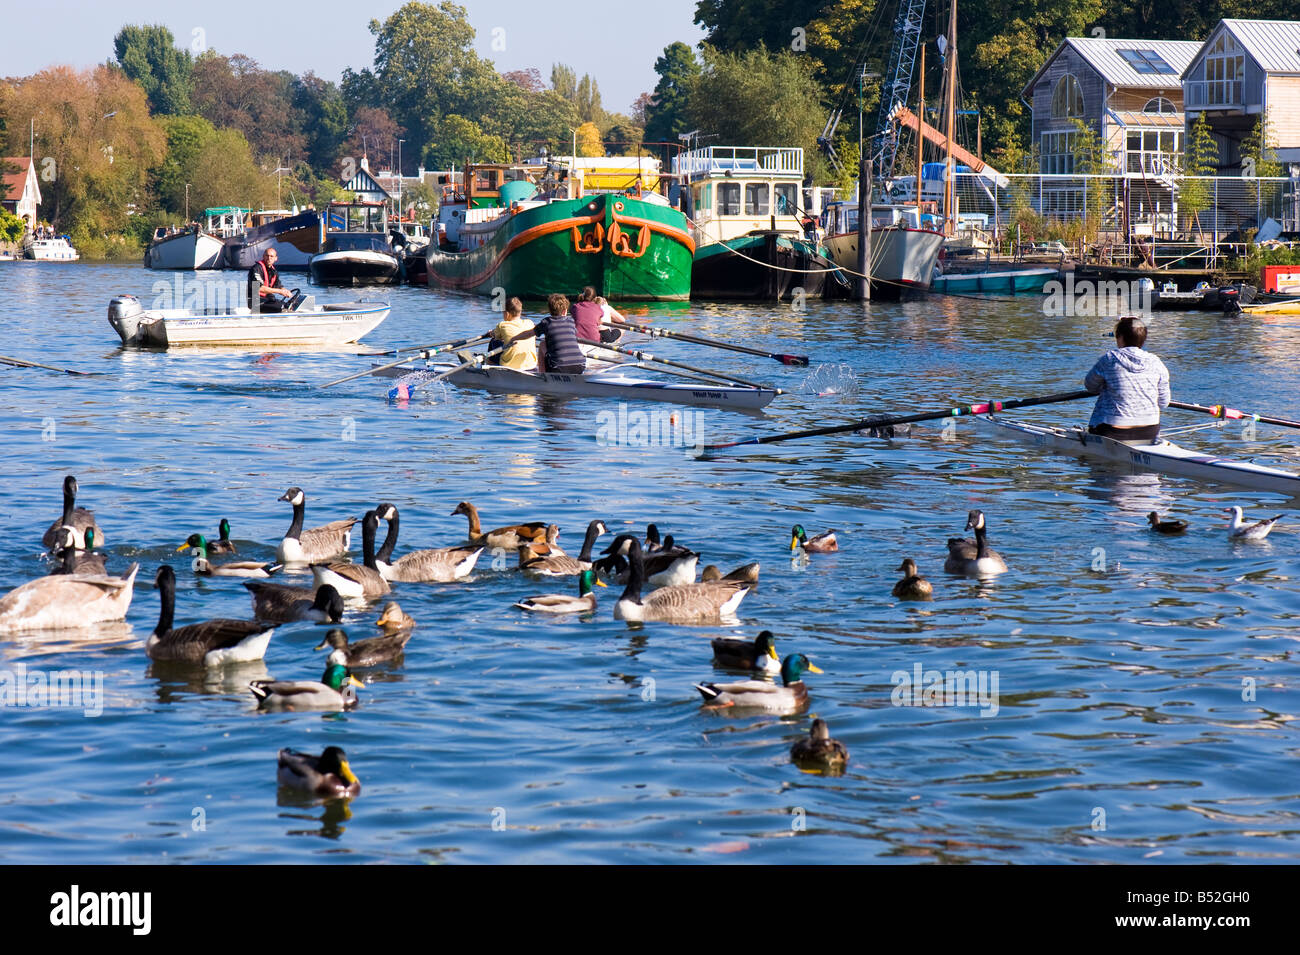 People relaxing on Thames River Twickenham TW10 London United Kingdom - Stock Image